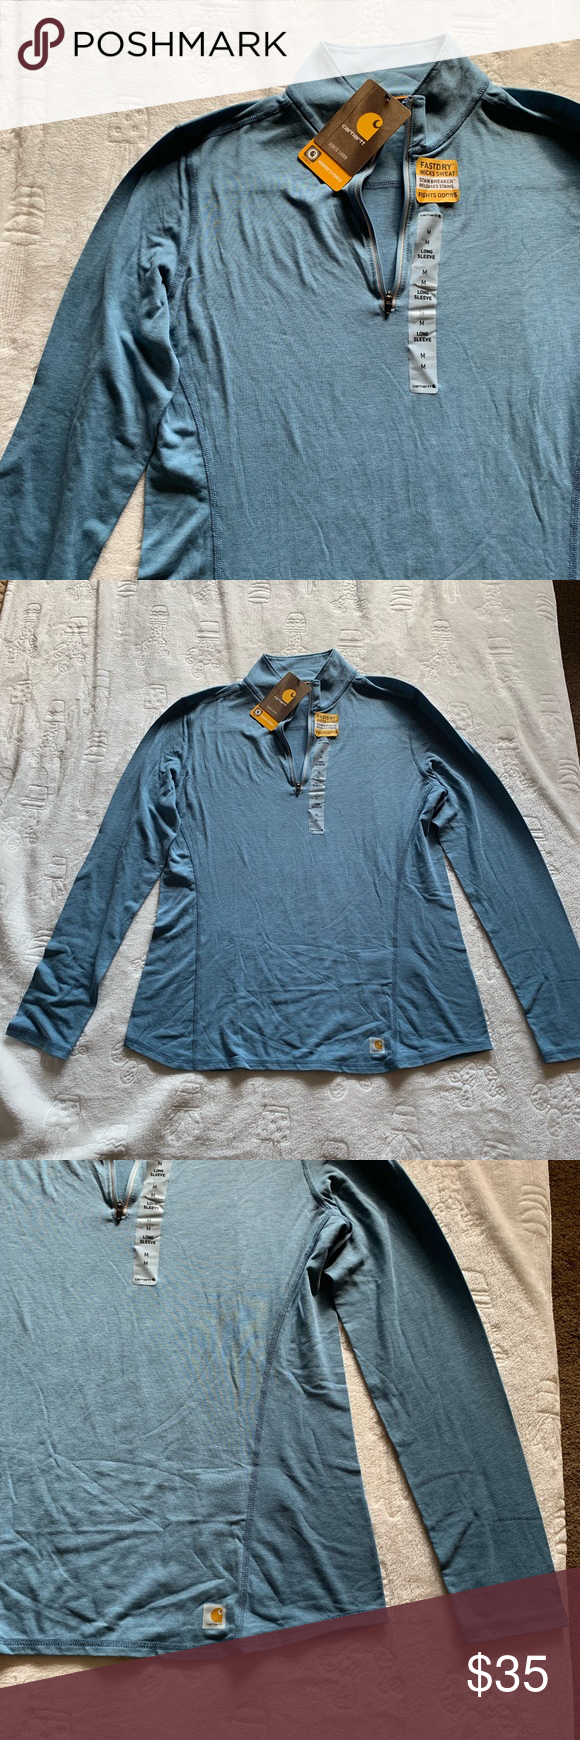 Carhartt Women's Force Half Zip Long Sleeve Carhartt Women's Force Half Zip Long Sleeve Blue Brand new with tags  Fast dry Wicks sweat  Stain Breaker - Releases stains  Fights odor  Size Medium Carhartt Tops #carharttwomen Carhartt Women's Force Half Zip Long Sleeve Carhartt Women's Force Half Zip Long Sleeve Blue Brand new with tags  Fast dry Wicks sweat  Stain Breaker - Releases stains  Fights odor  Size Medium Carhartt Tops #carharttwomen